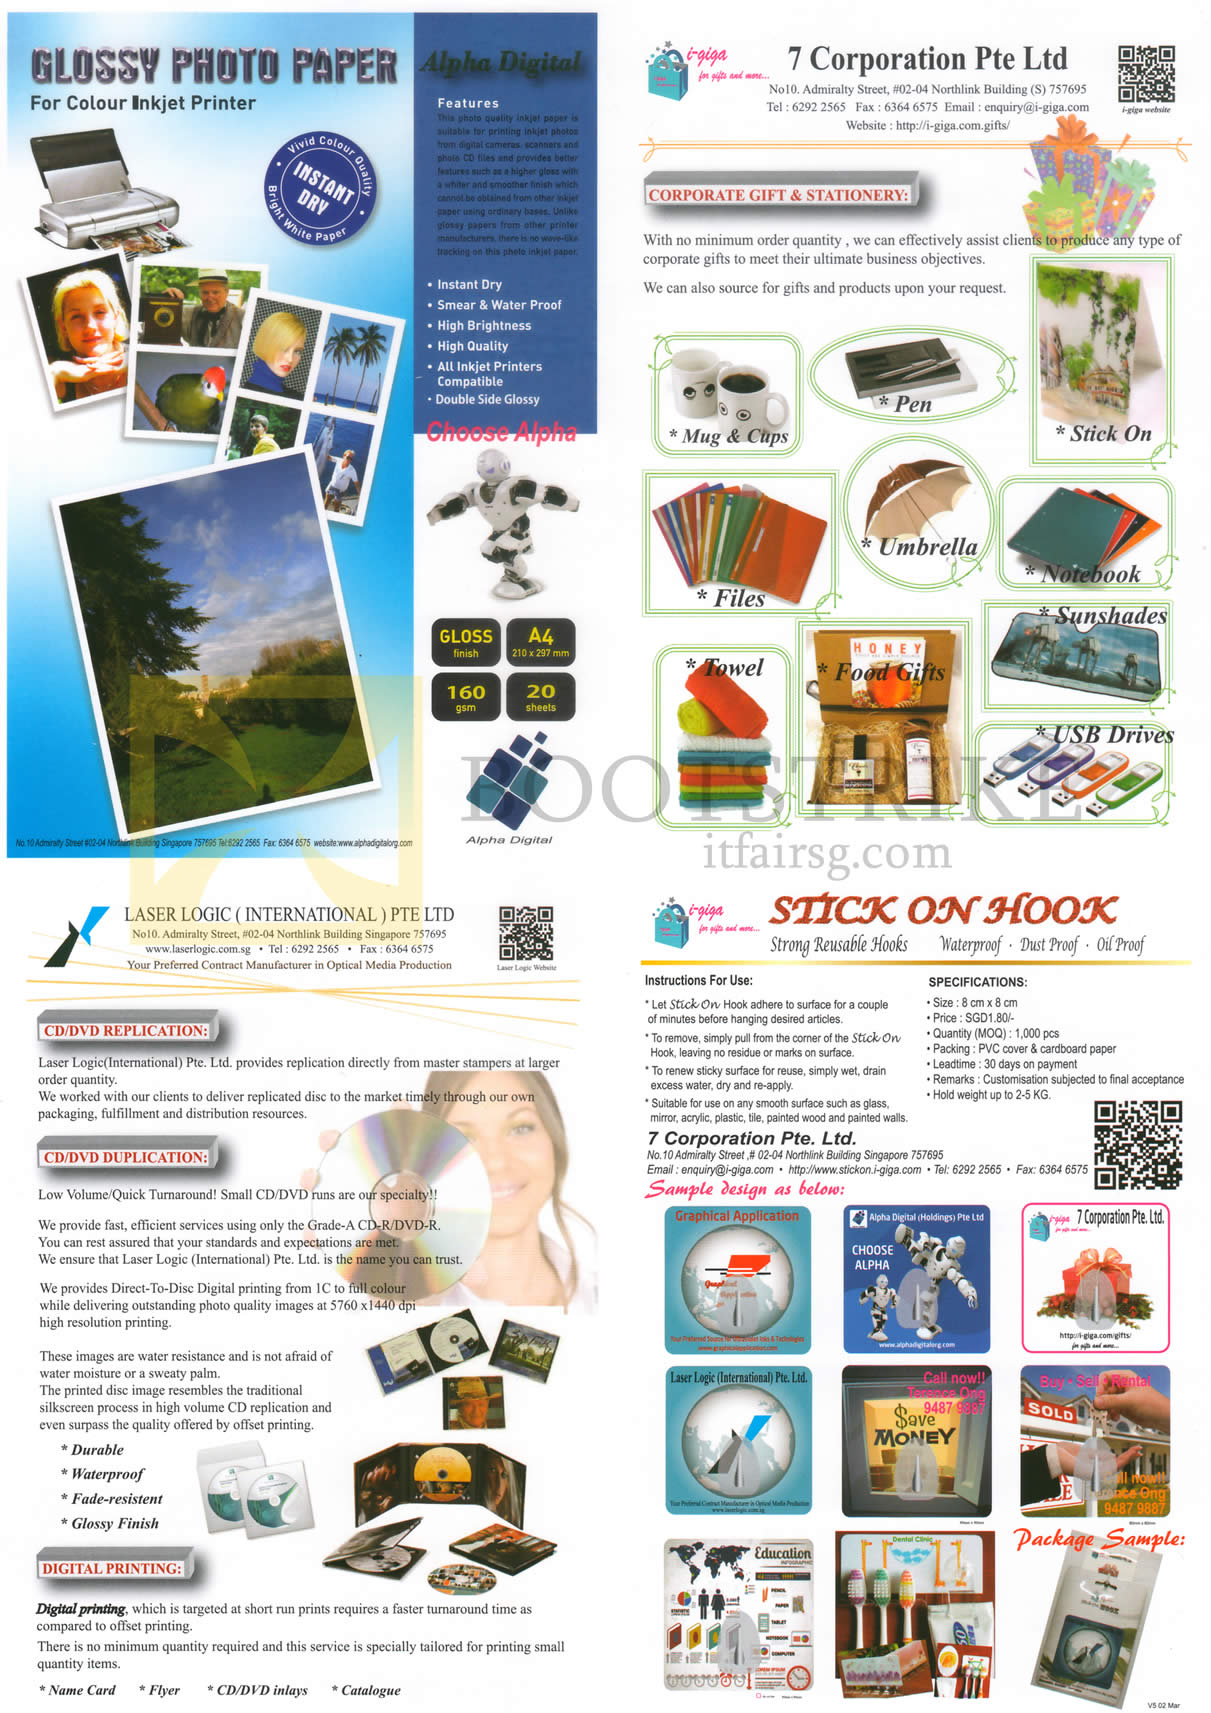 COMEX 2016 price list image brochure of Alpha Digital Glossy Photo Paper, Stick On Hook, CD DVD Duplication, Digital Printing, Corporate Gifts